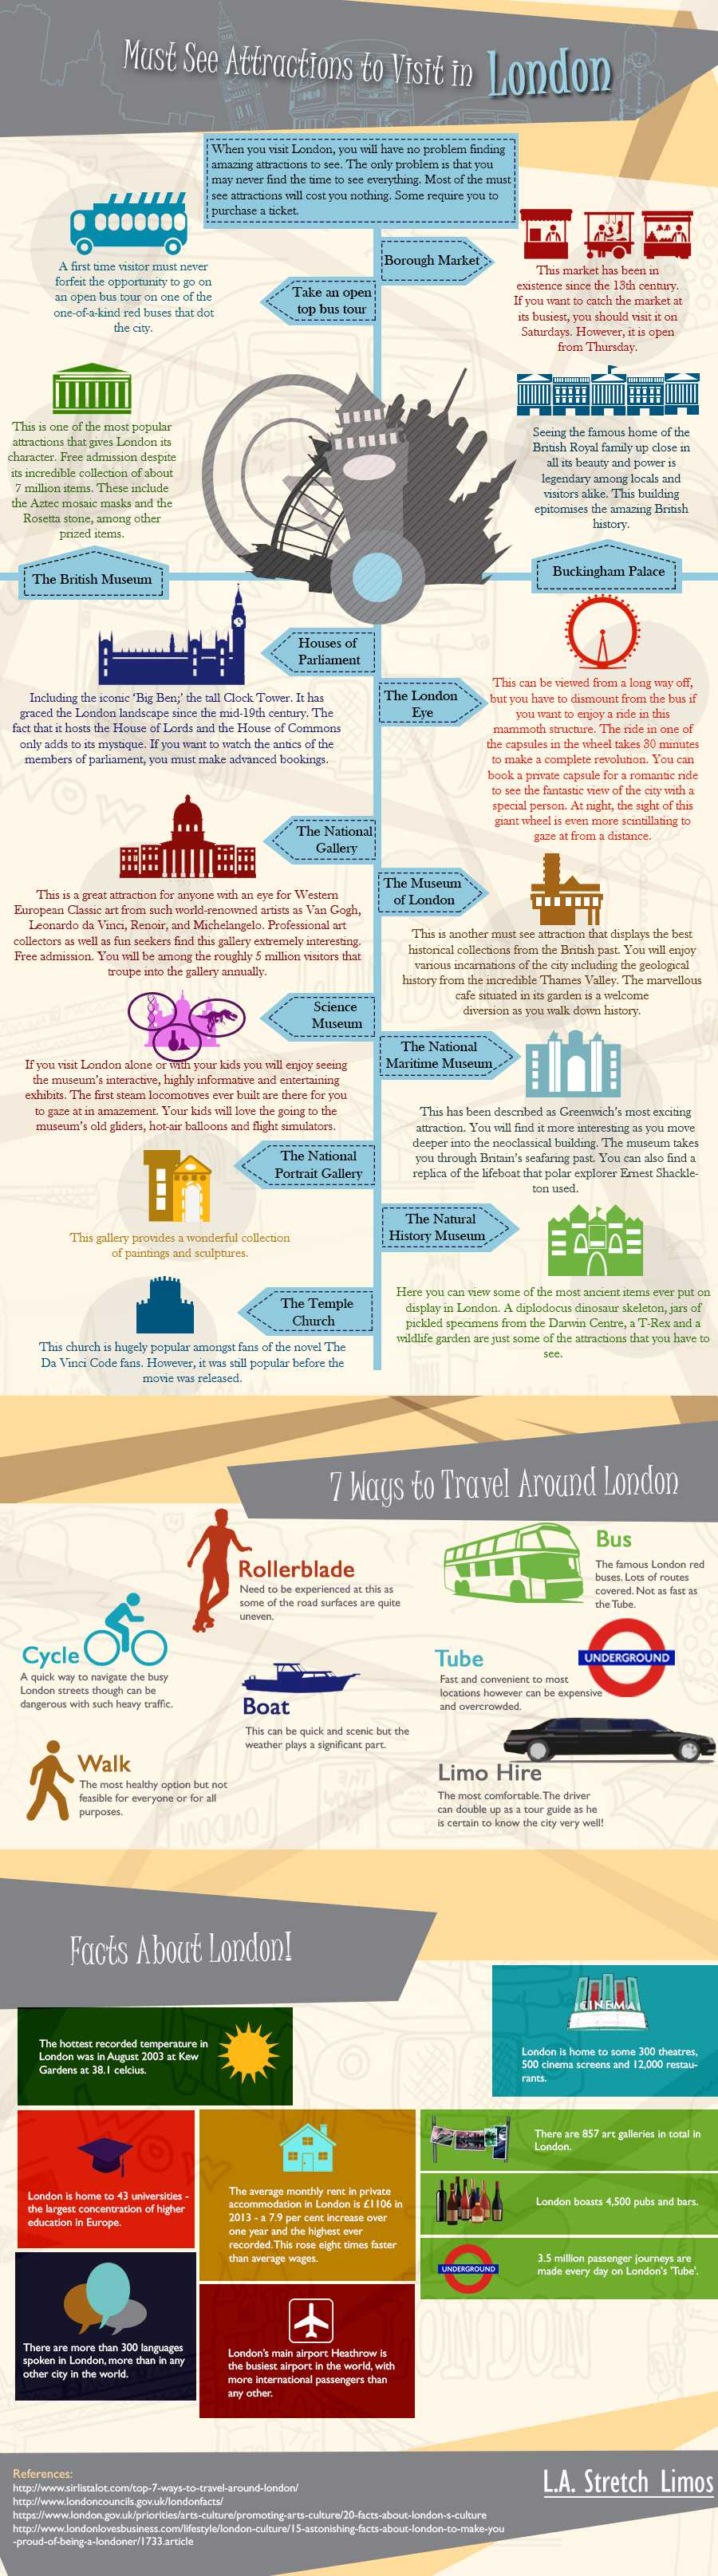 London: So Much to See and Do!